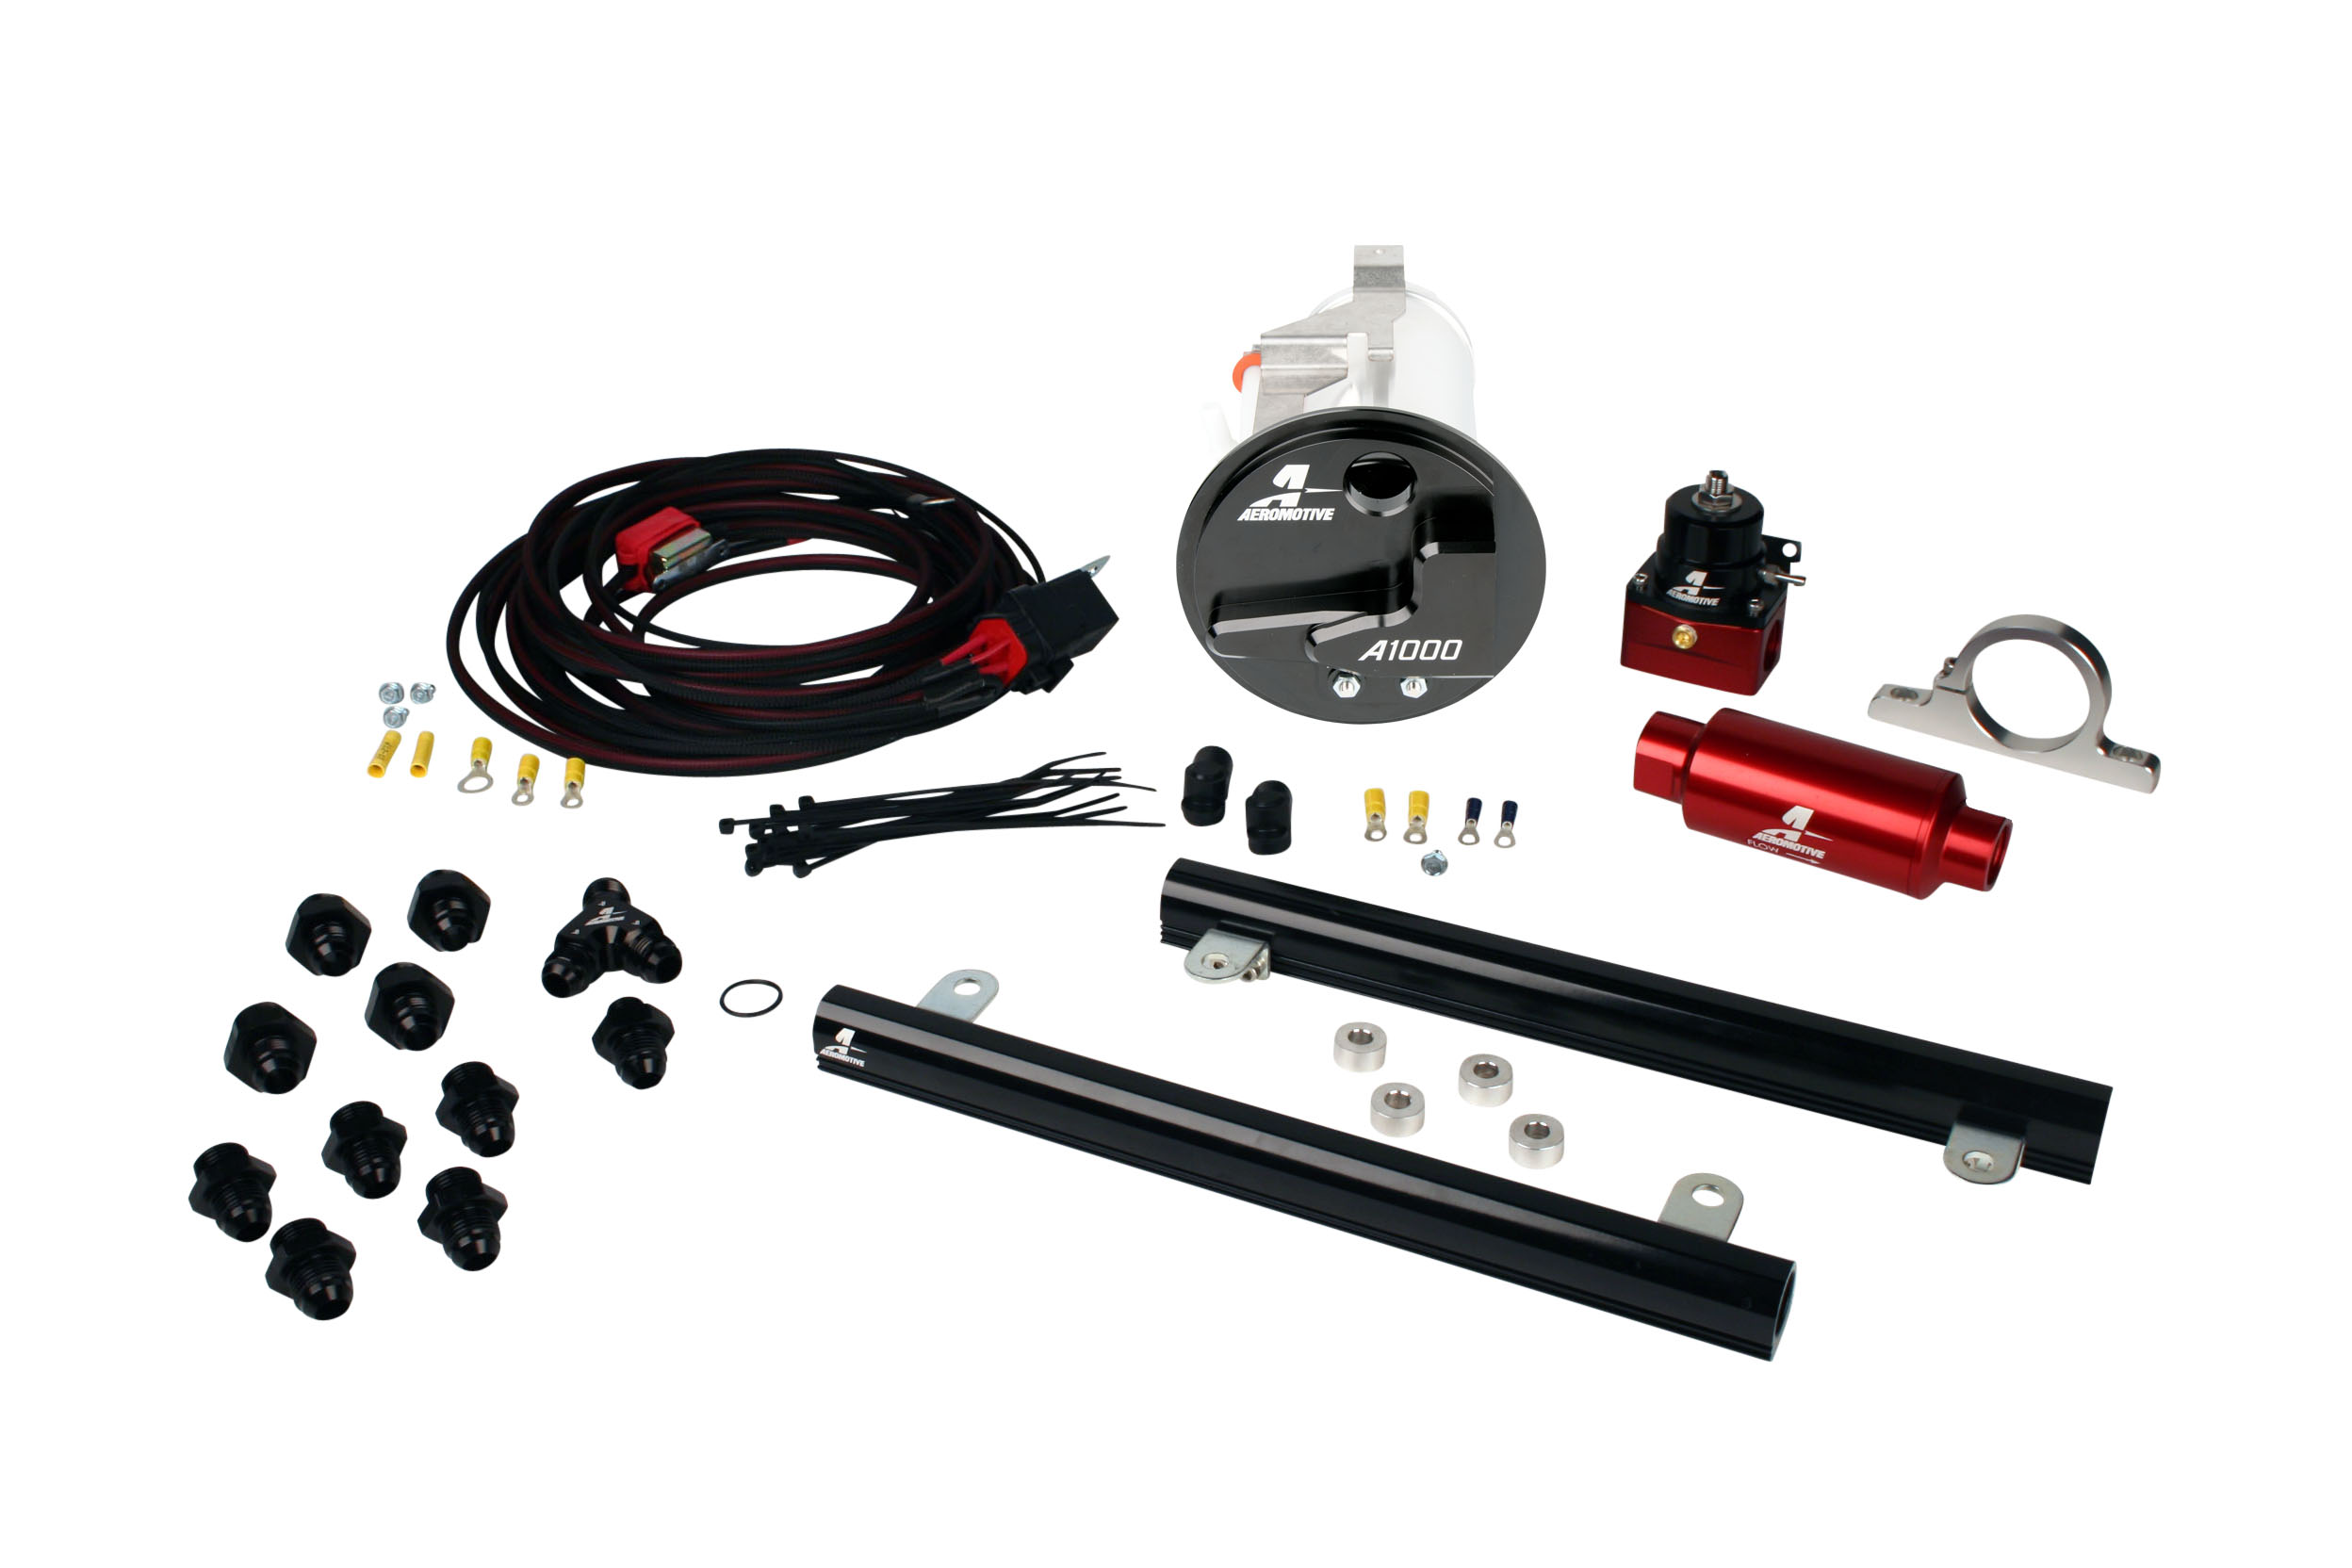 05 09 Mustang Gt Stealth A1000 Race Fuel System With 54l Cj 03 Filter Rails